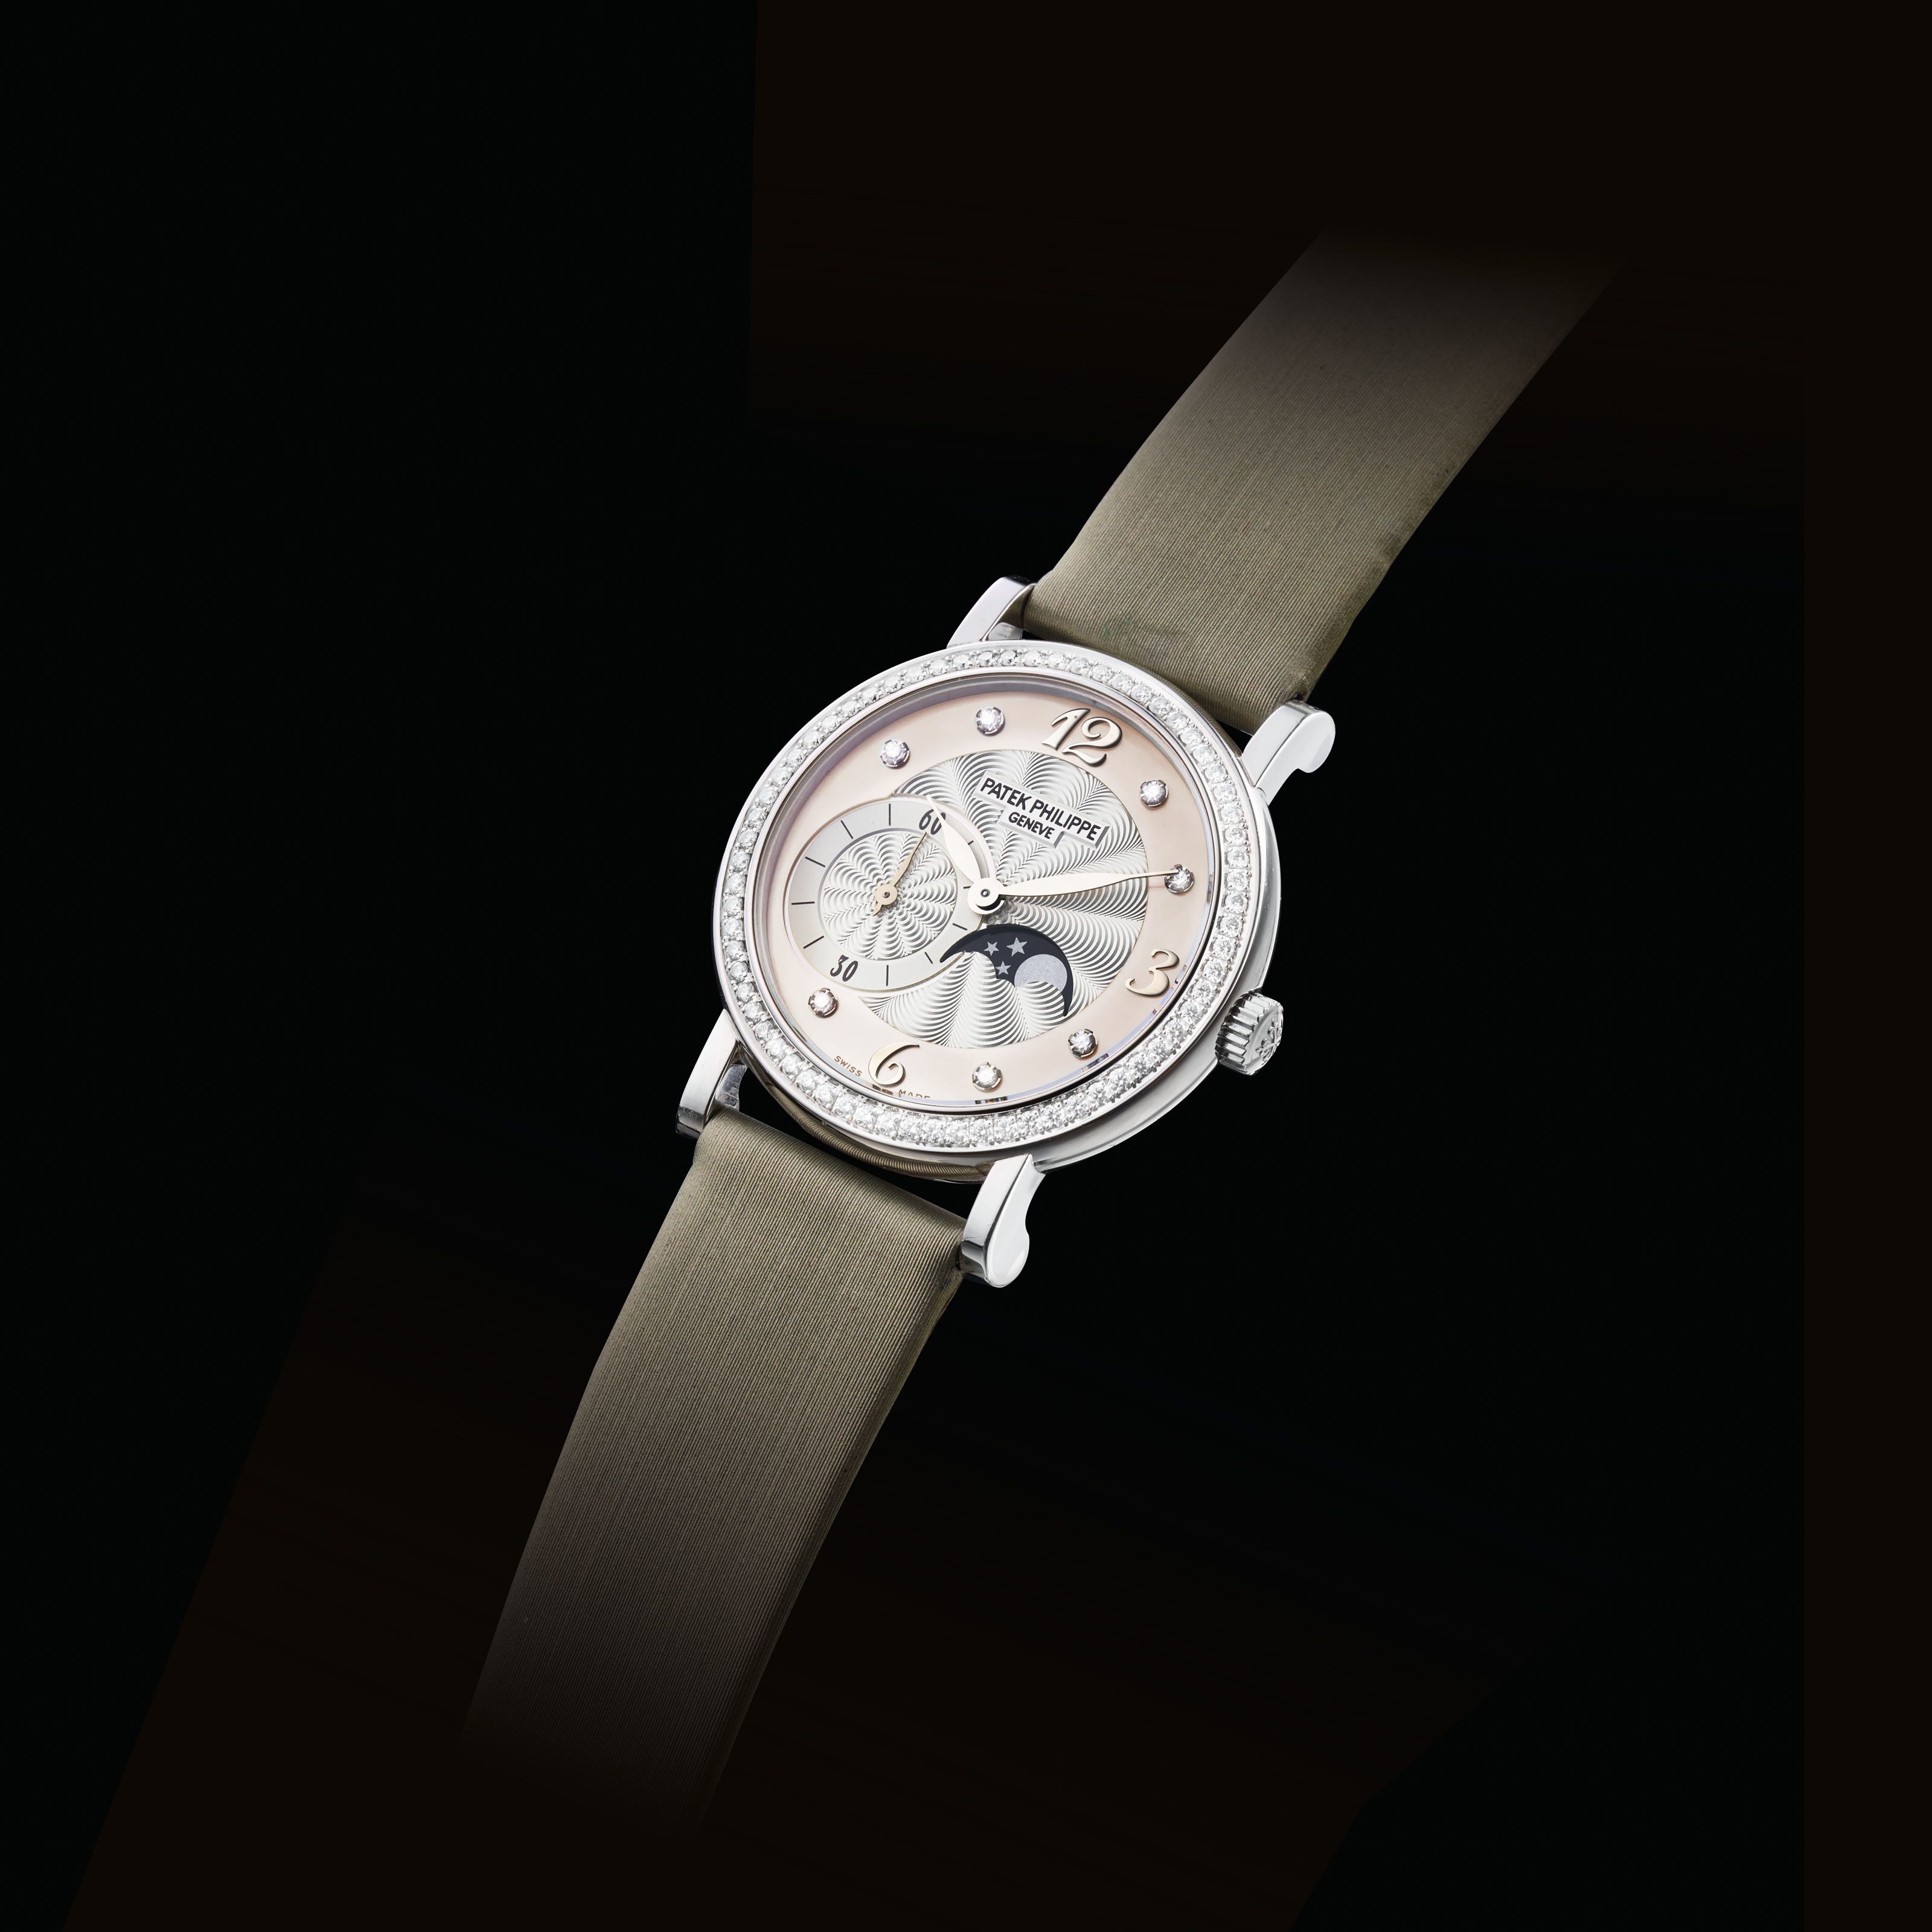 6ab2b07eaf92 PATEK PHILIPPE. A LADY S FINE 18K WHITE GOLD AND DIAMOND-SET WRISTWATCH  WITH MOON PHASES AND MOTHER-OF-PEARL DIAL